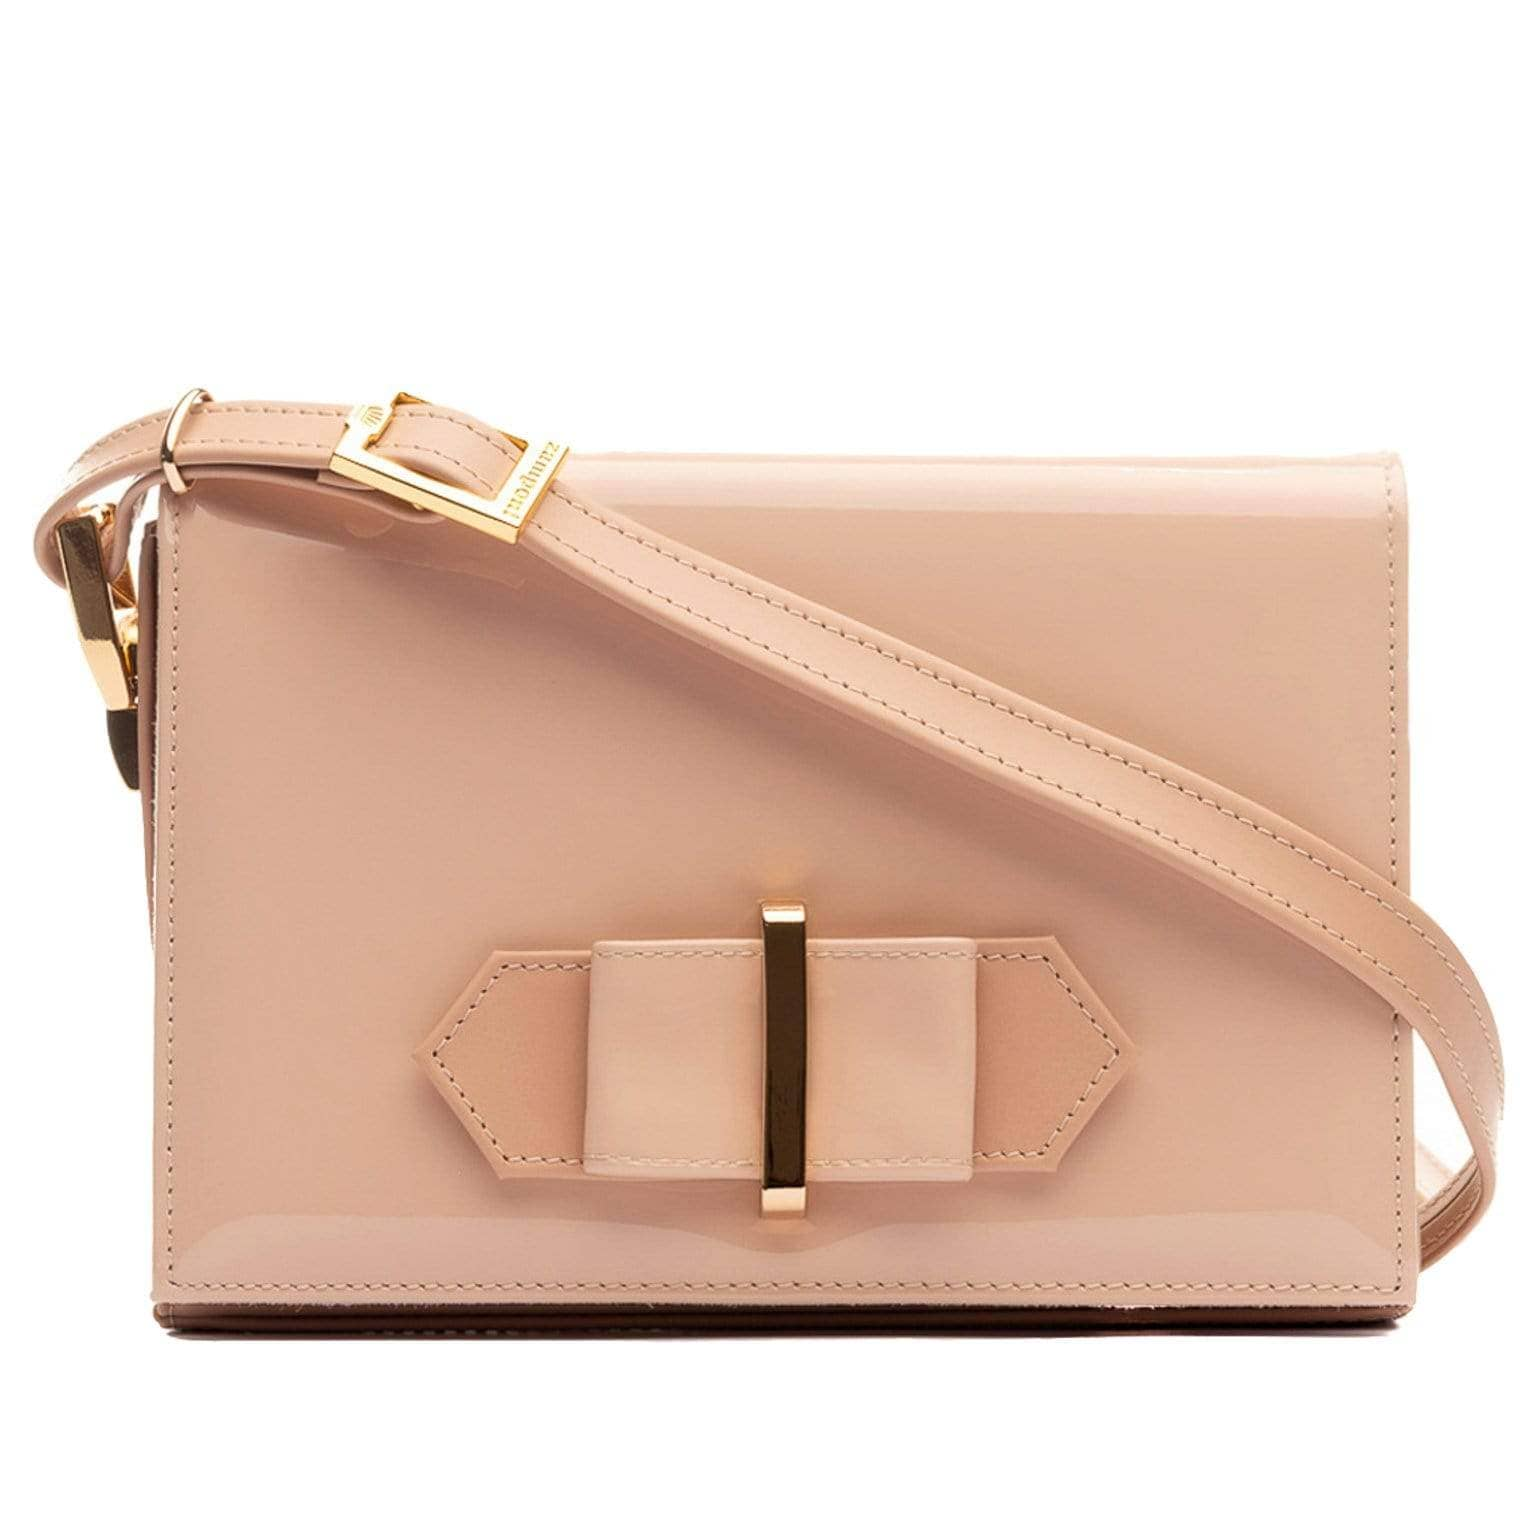 Blush Pink Evening Bag - Made in Italy - Patent Leather